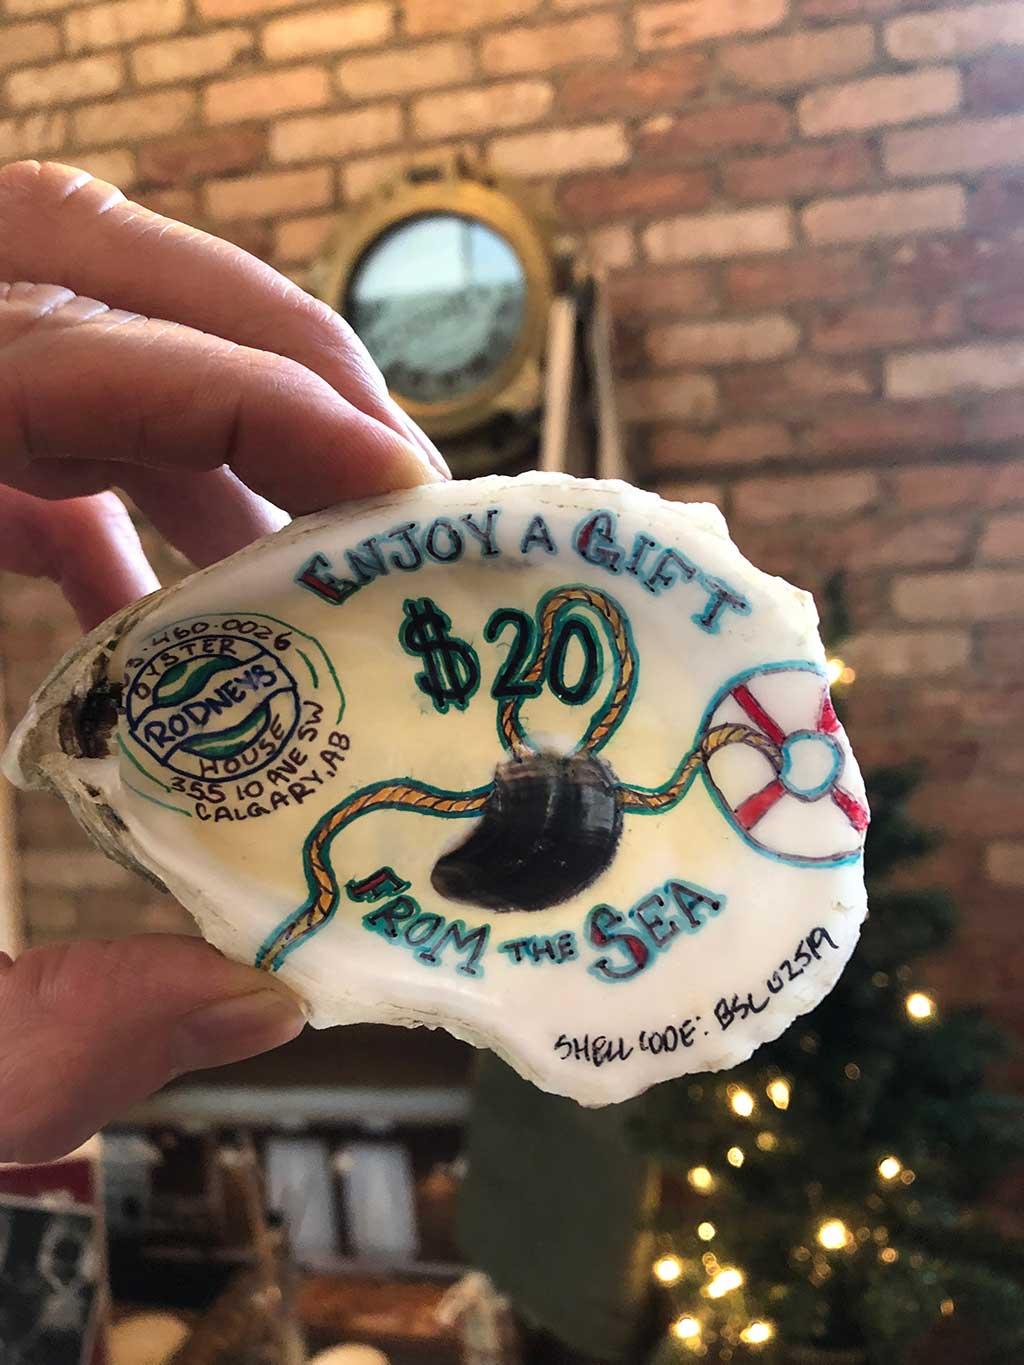 Rodney's Oyster House gift Shells $20 Gift Shell From The Sea